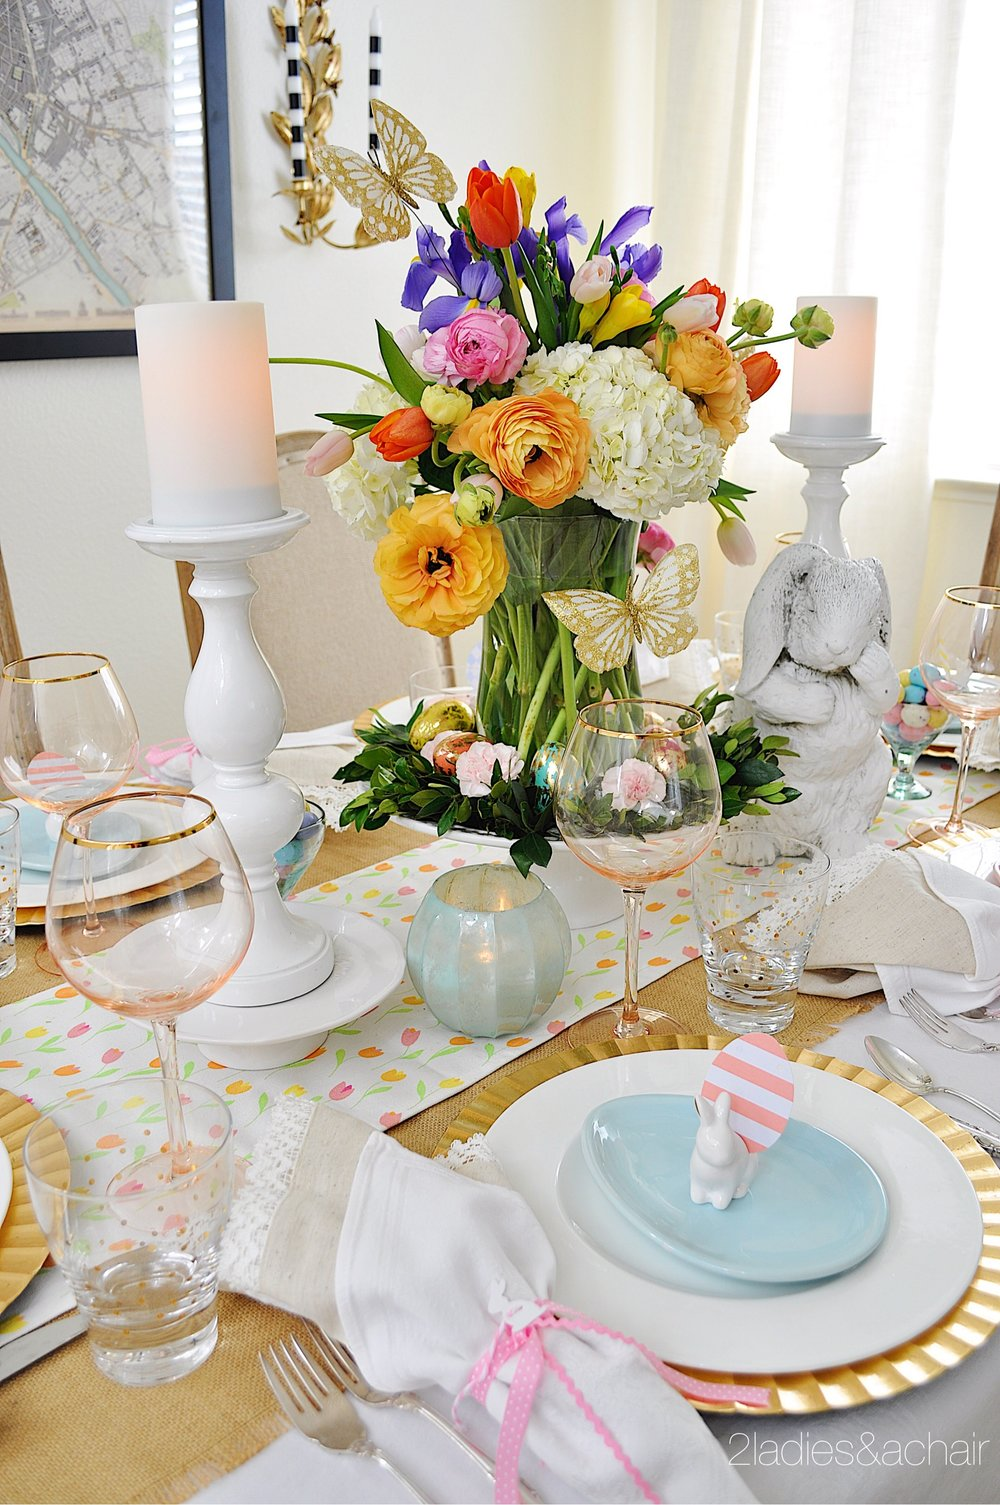 table settings IMG_6947.JPG